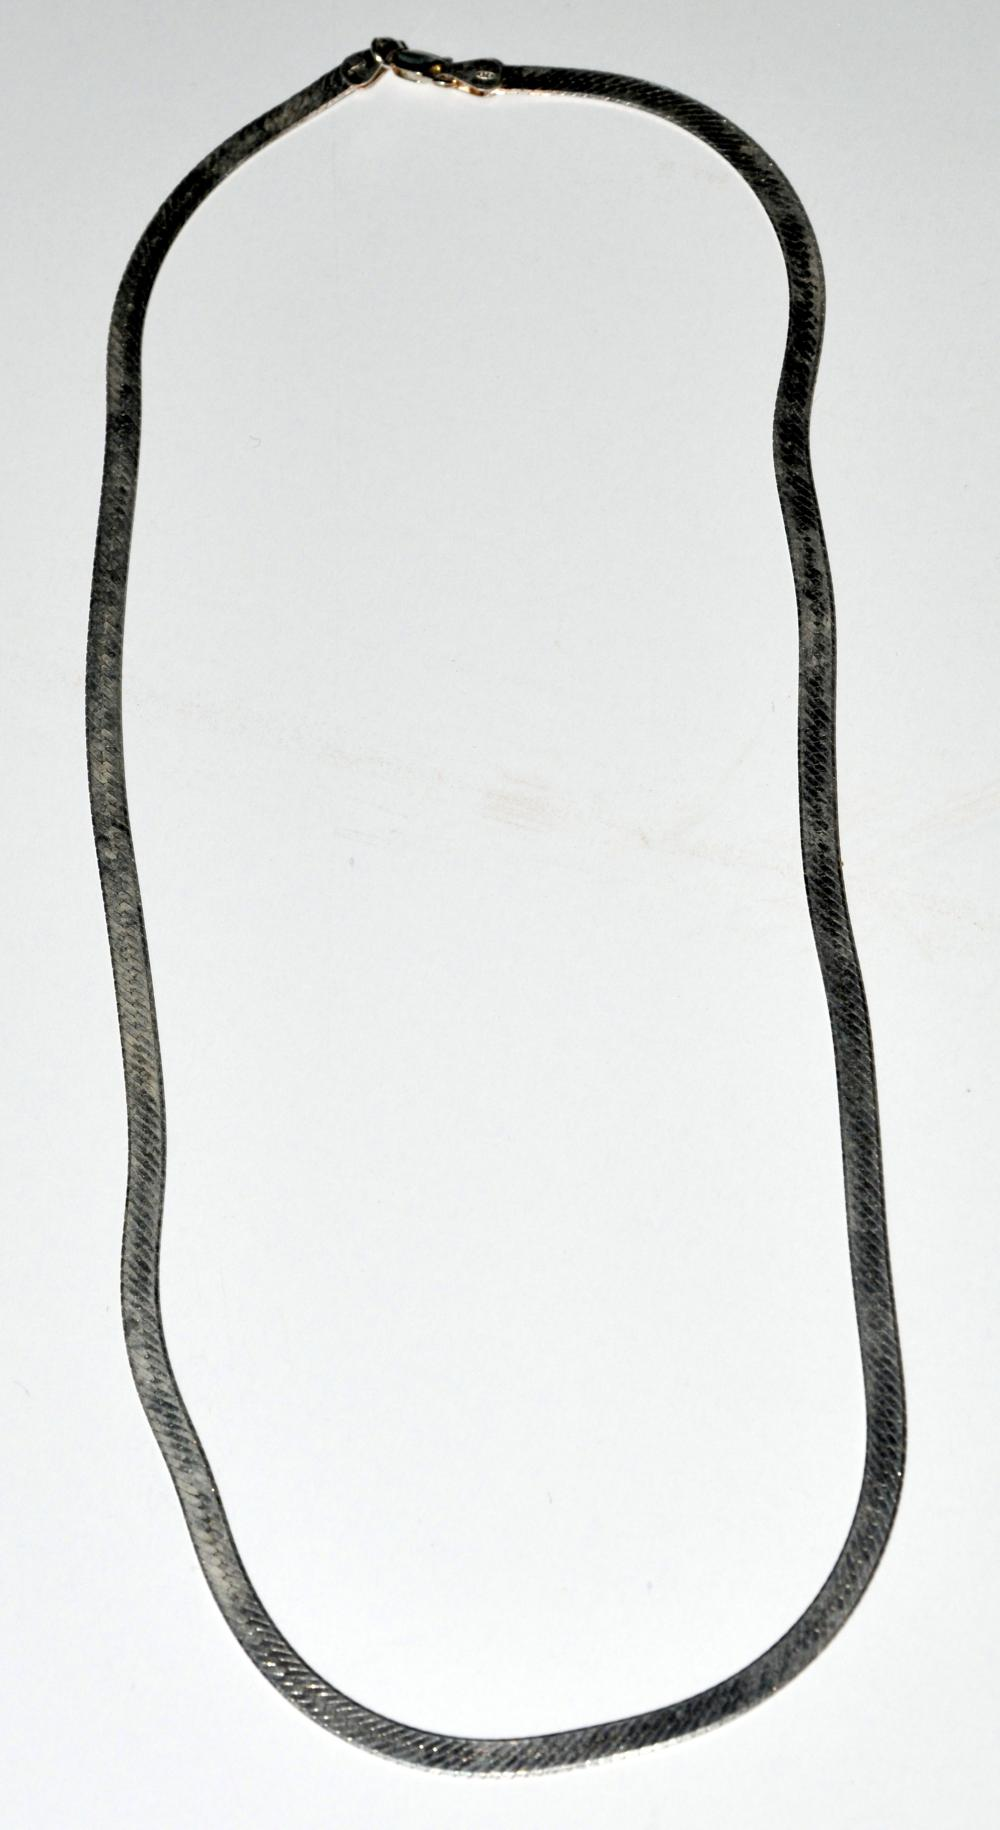 Sterling herringbone chain - 20 inches